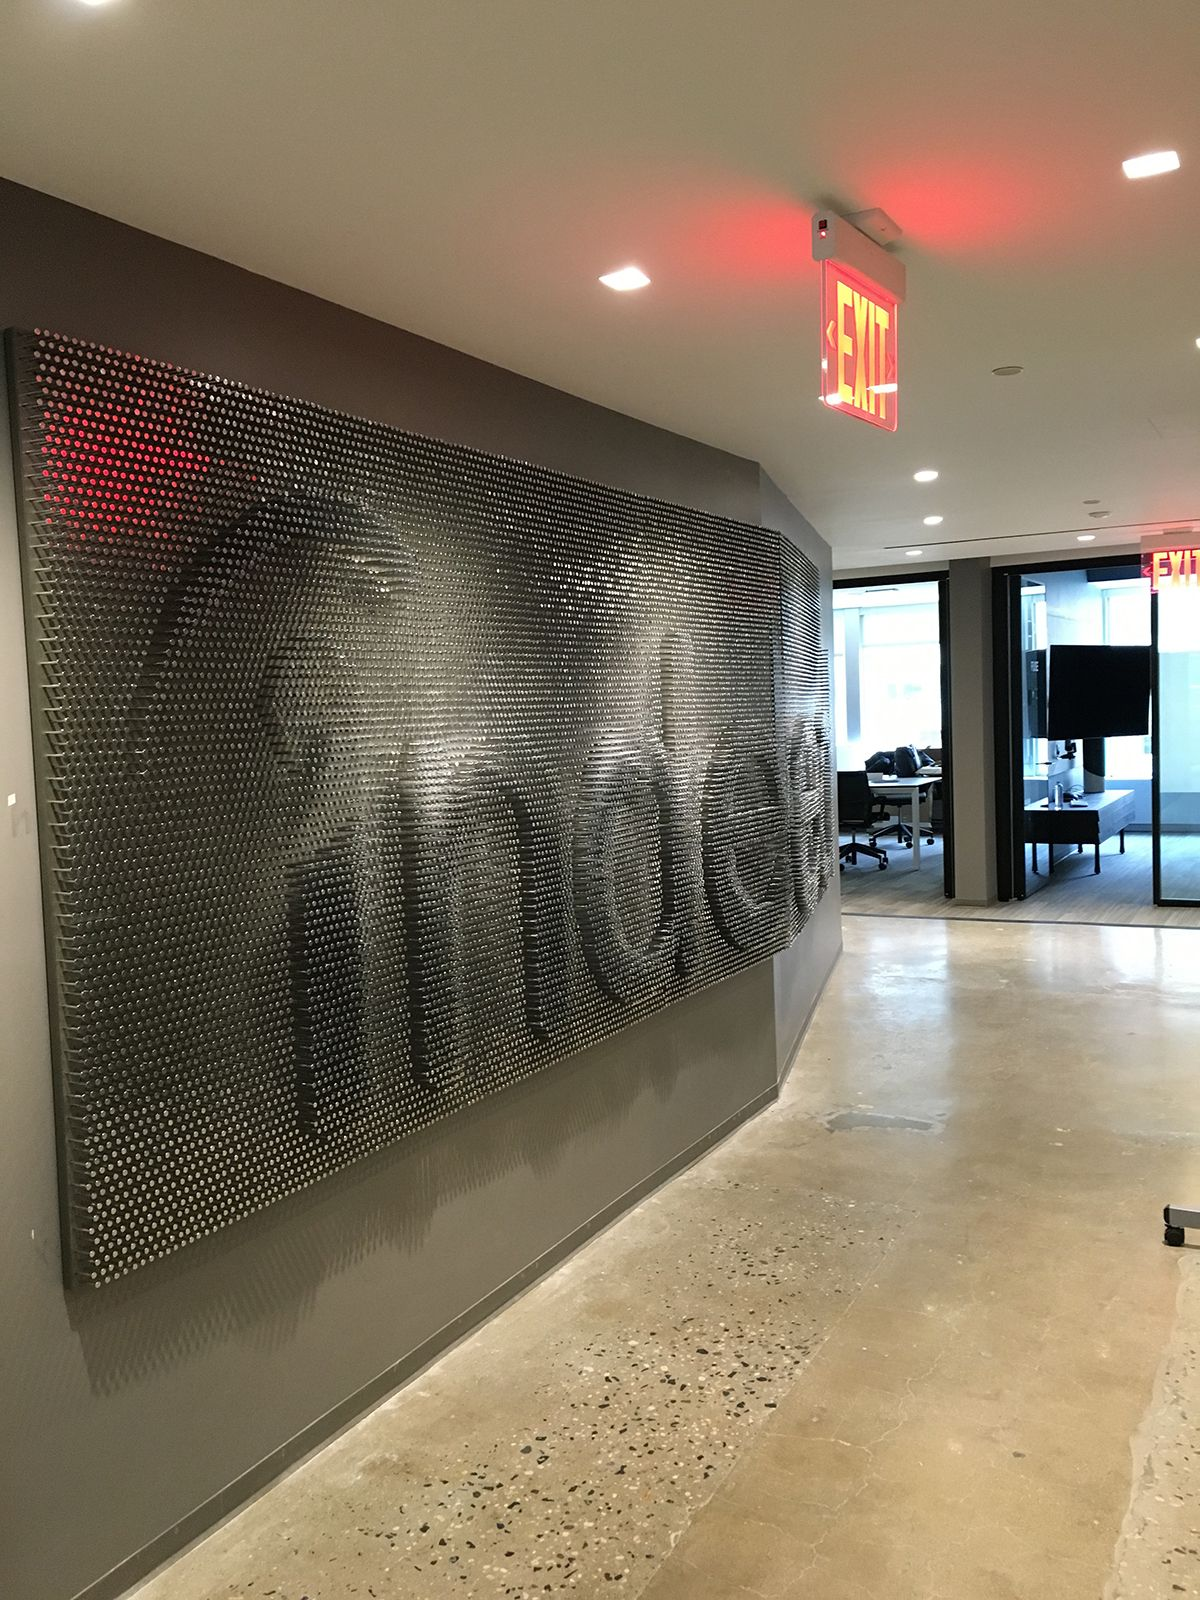 A Tour of Indeed's New NYC Office Office space